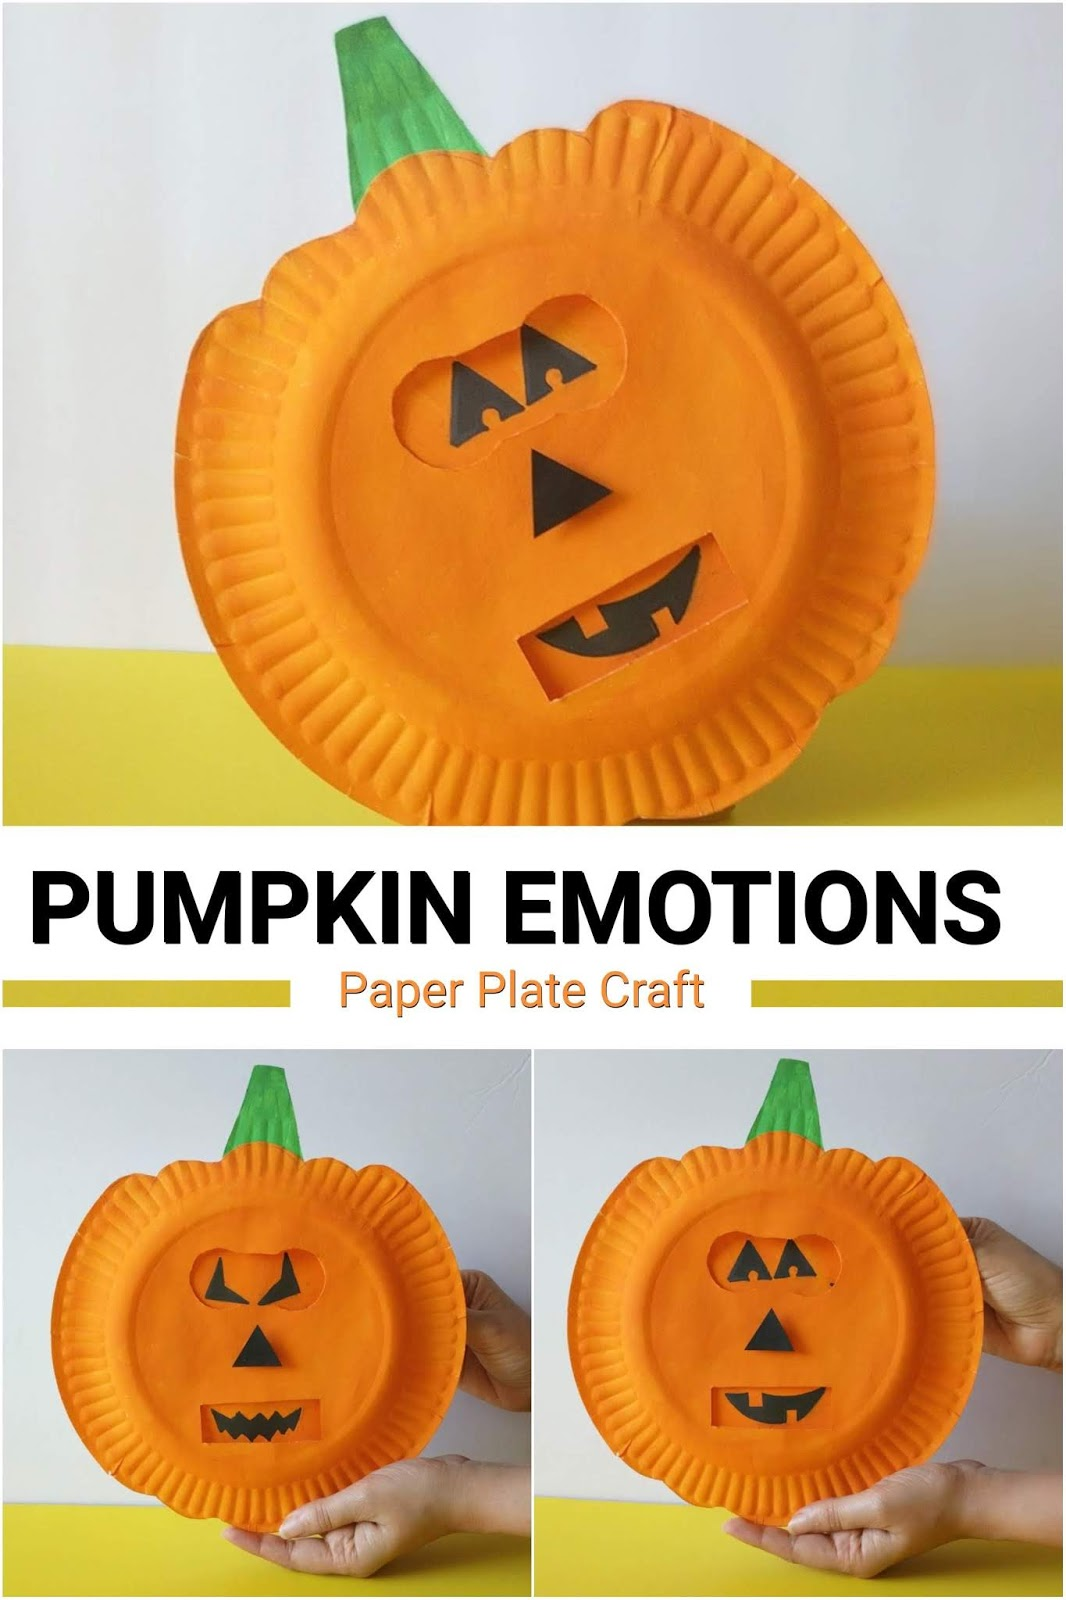 Pumpkin Emotions Halloween Craft For Kids